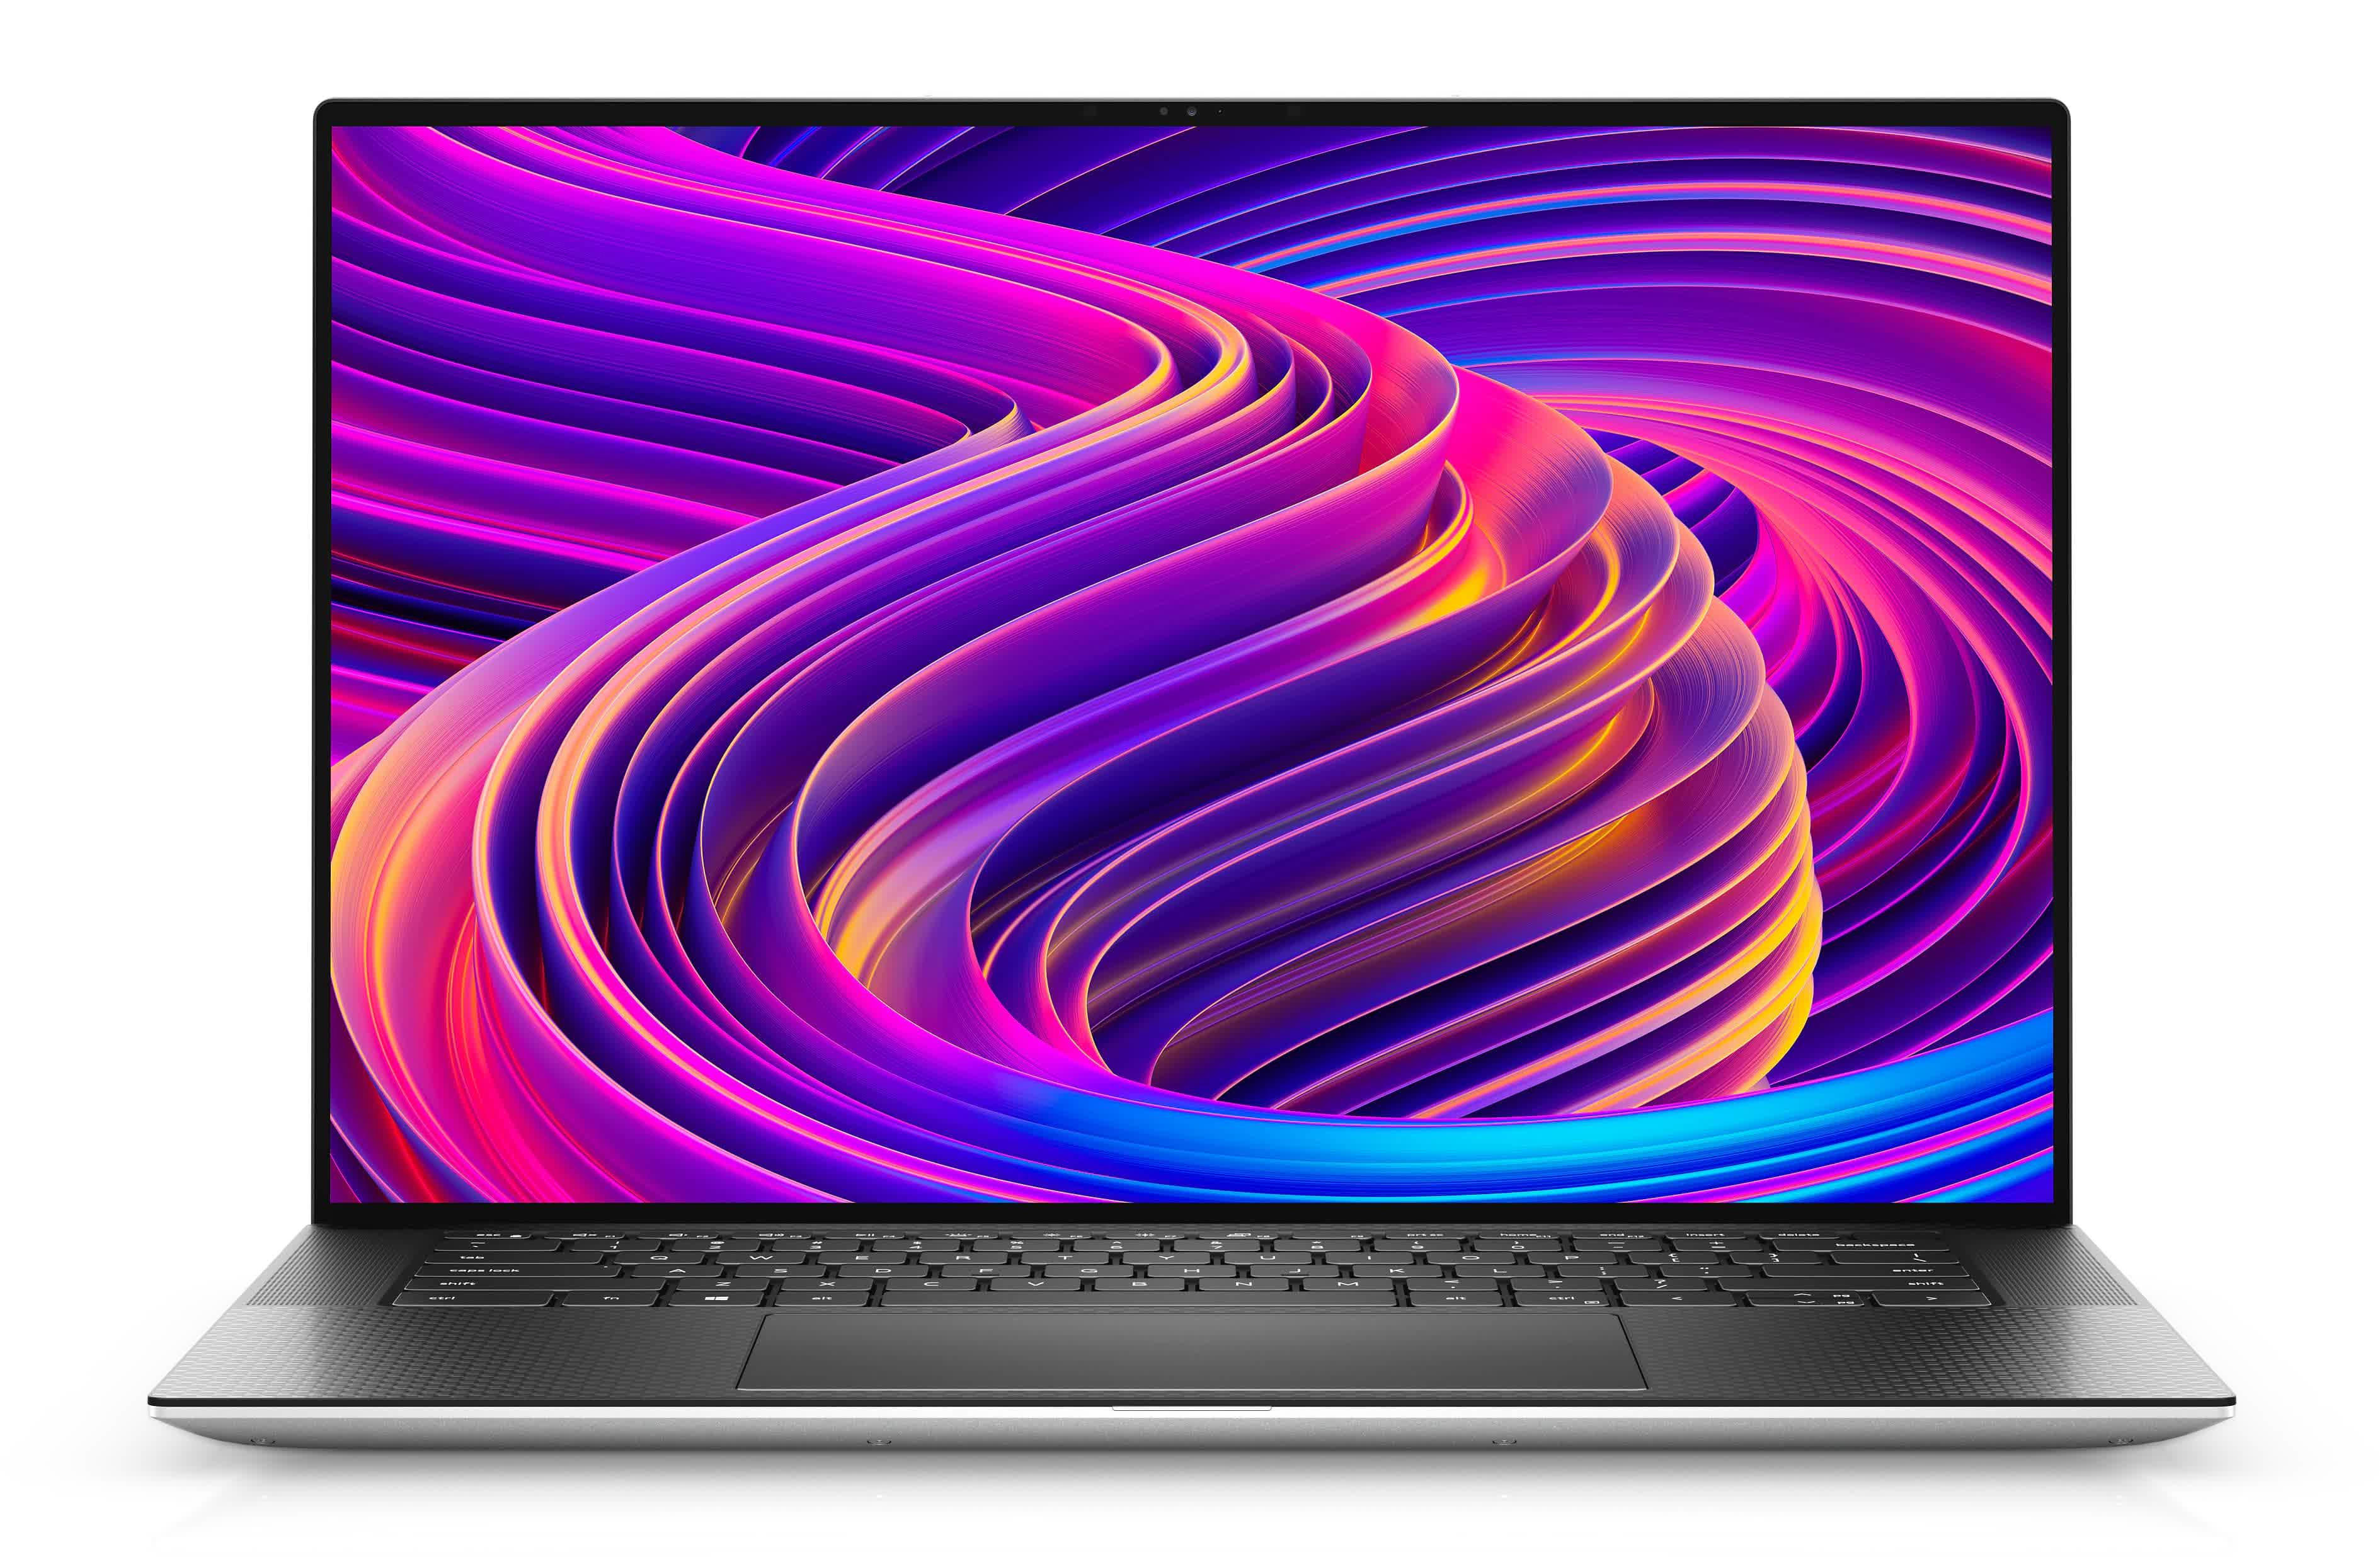 Dell XPS 15 OLED (9510)